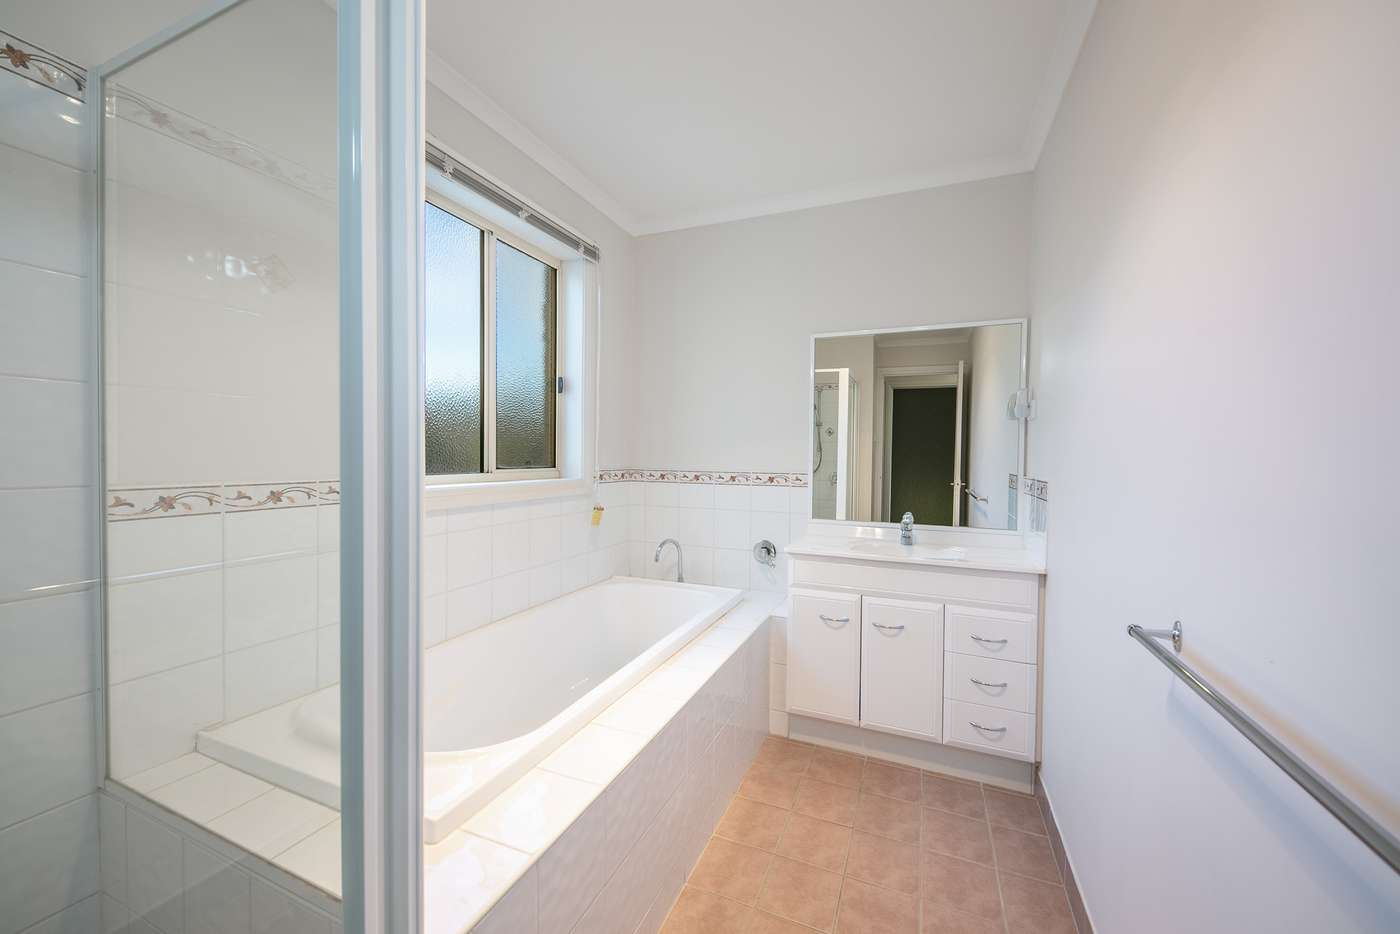 Sixth view of Homely house listing, 5/176 Station Road, New Gisborne VIC 3438